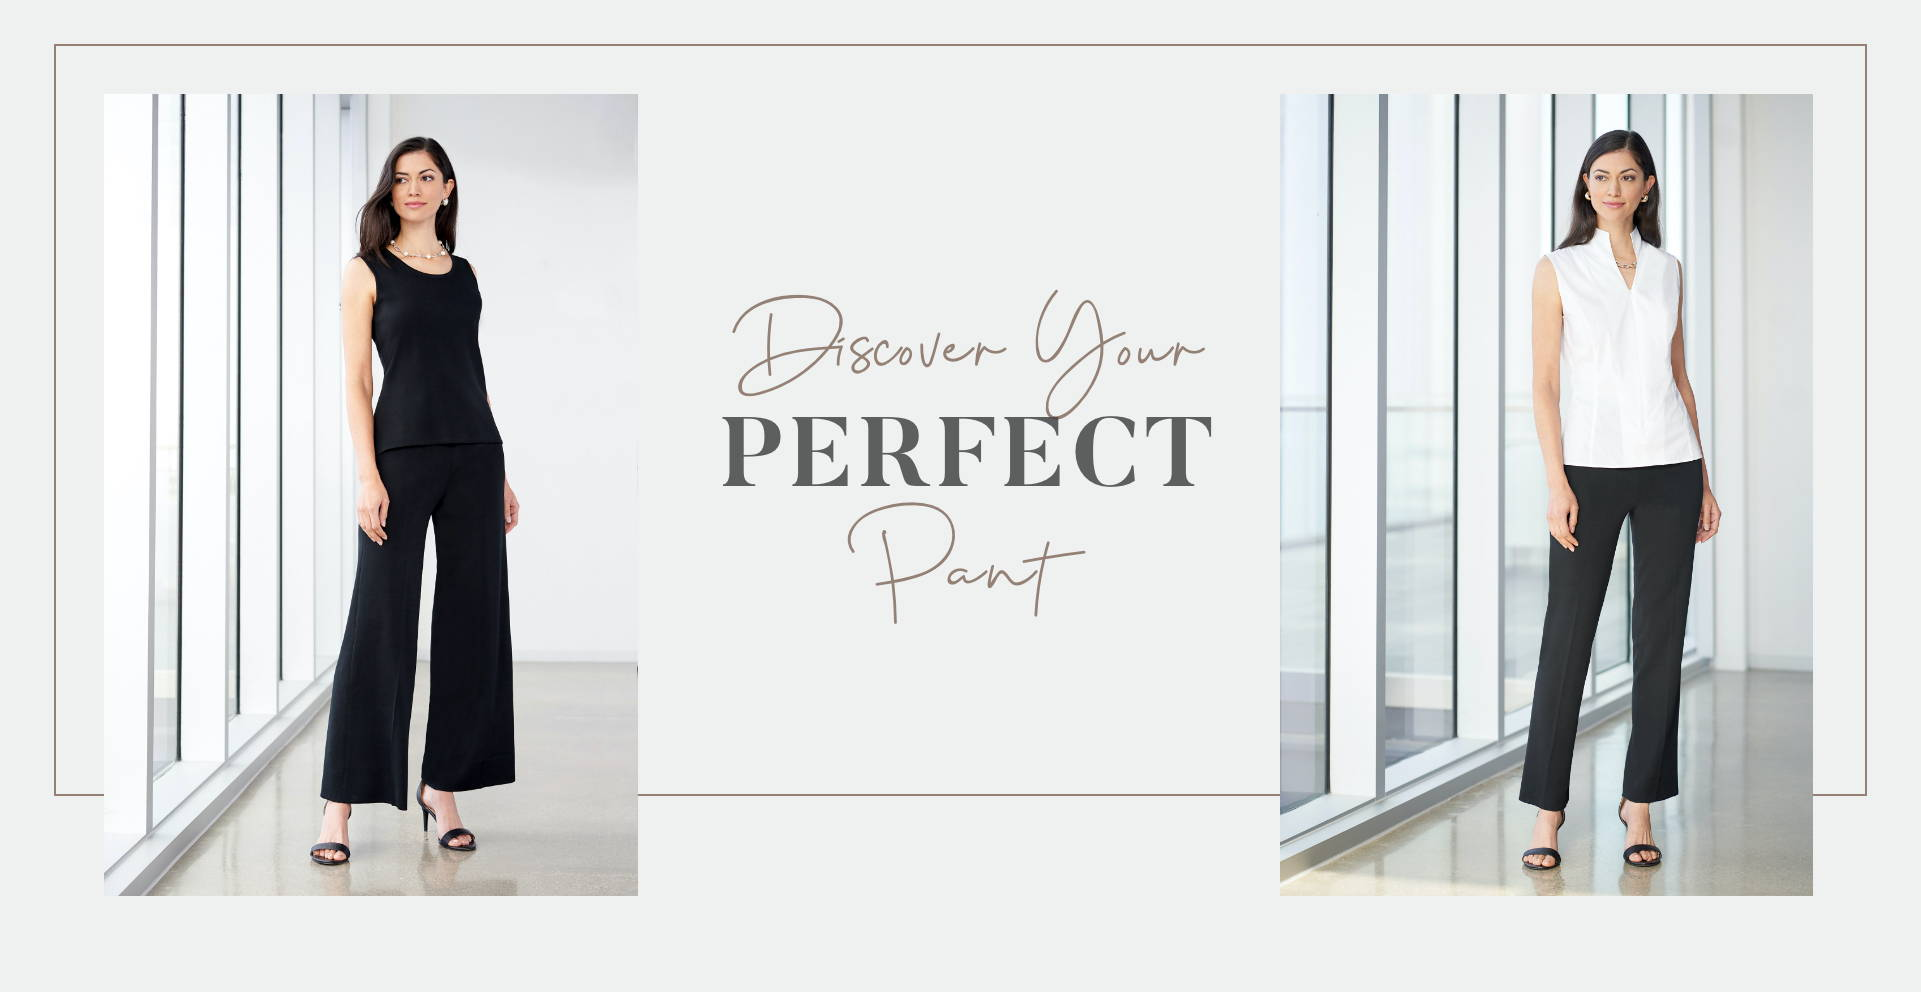 Discover Your Perfect Pant